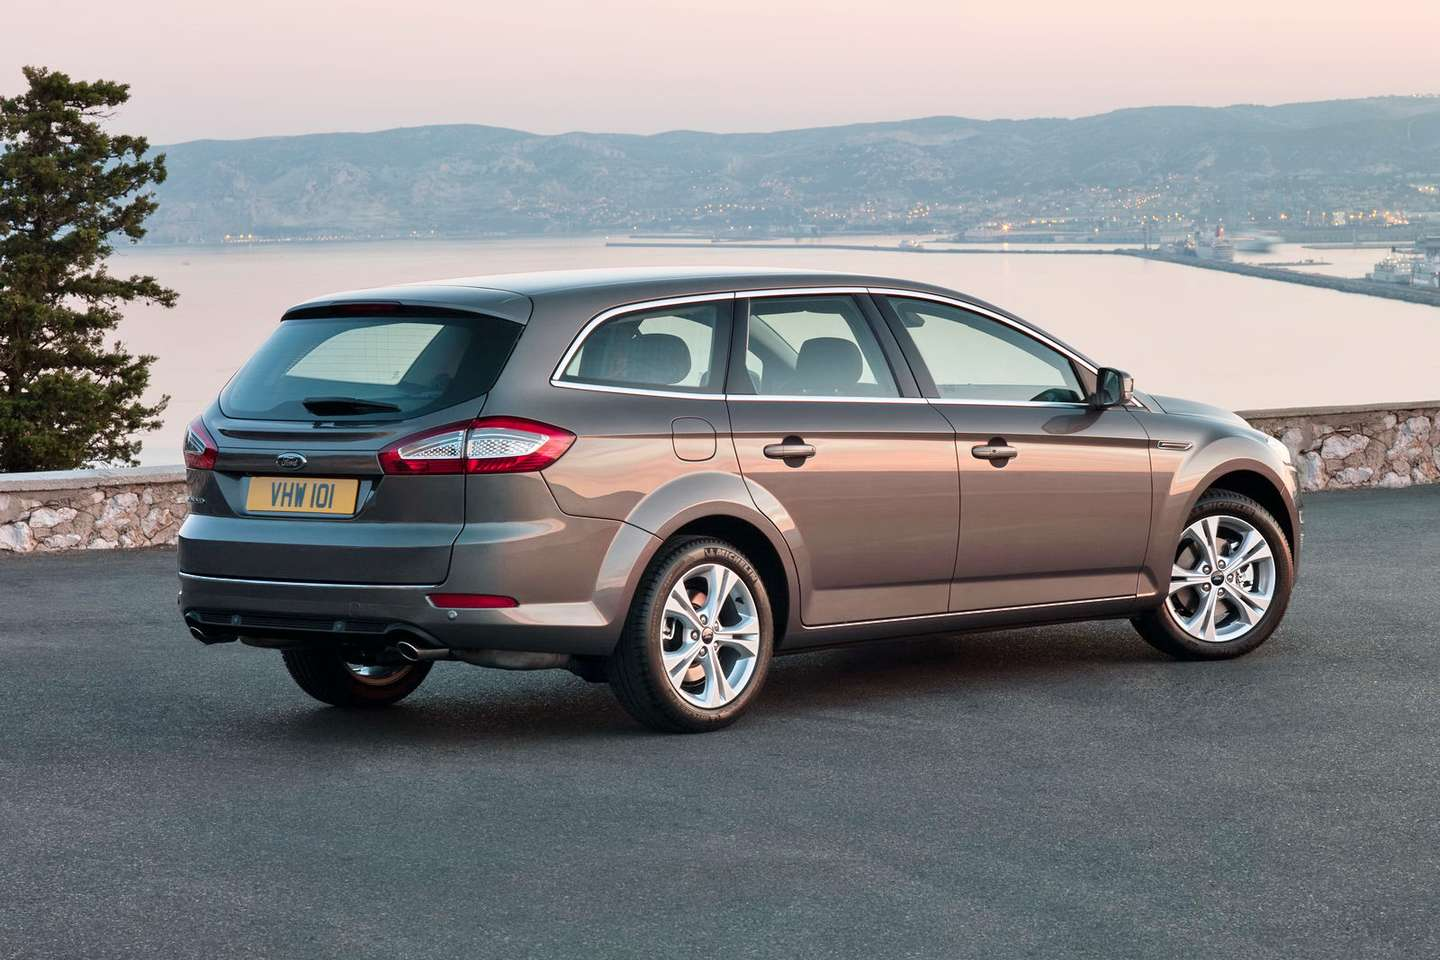 Ford Mondeo Estate #7880466